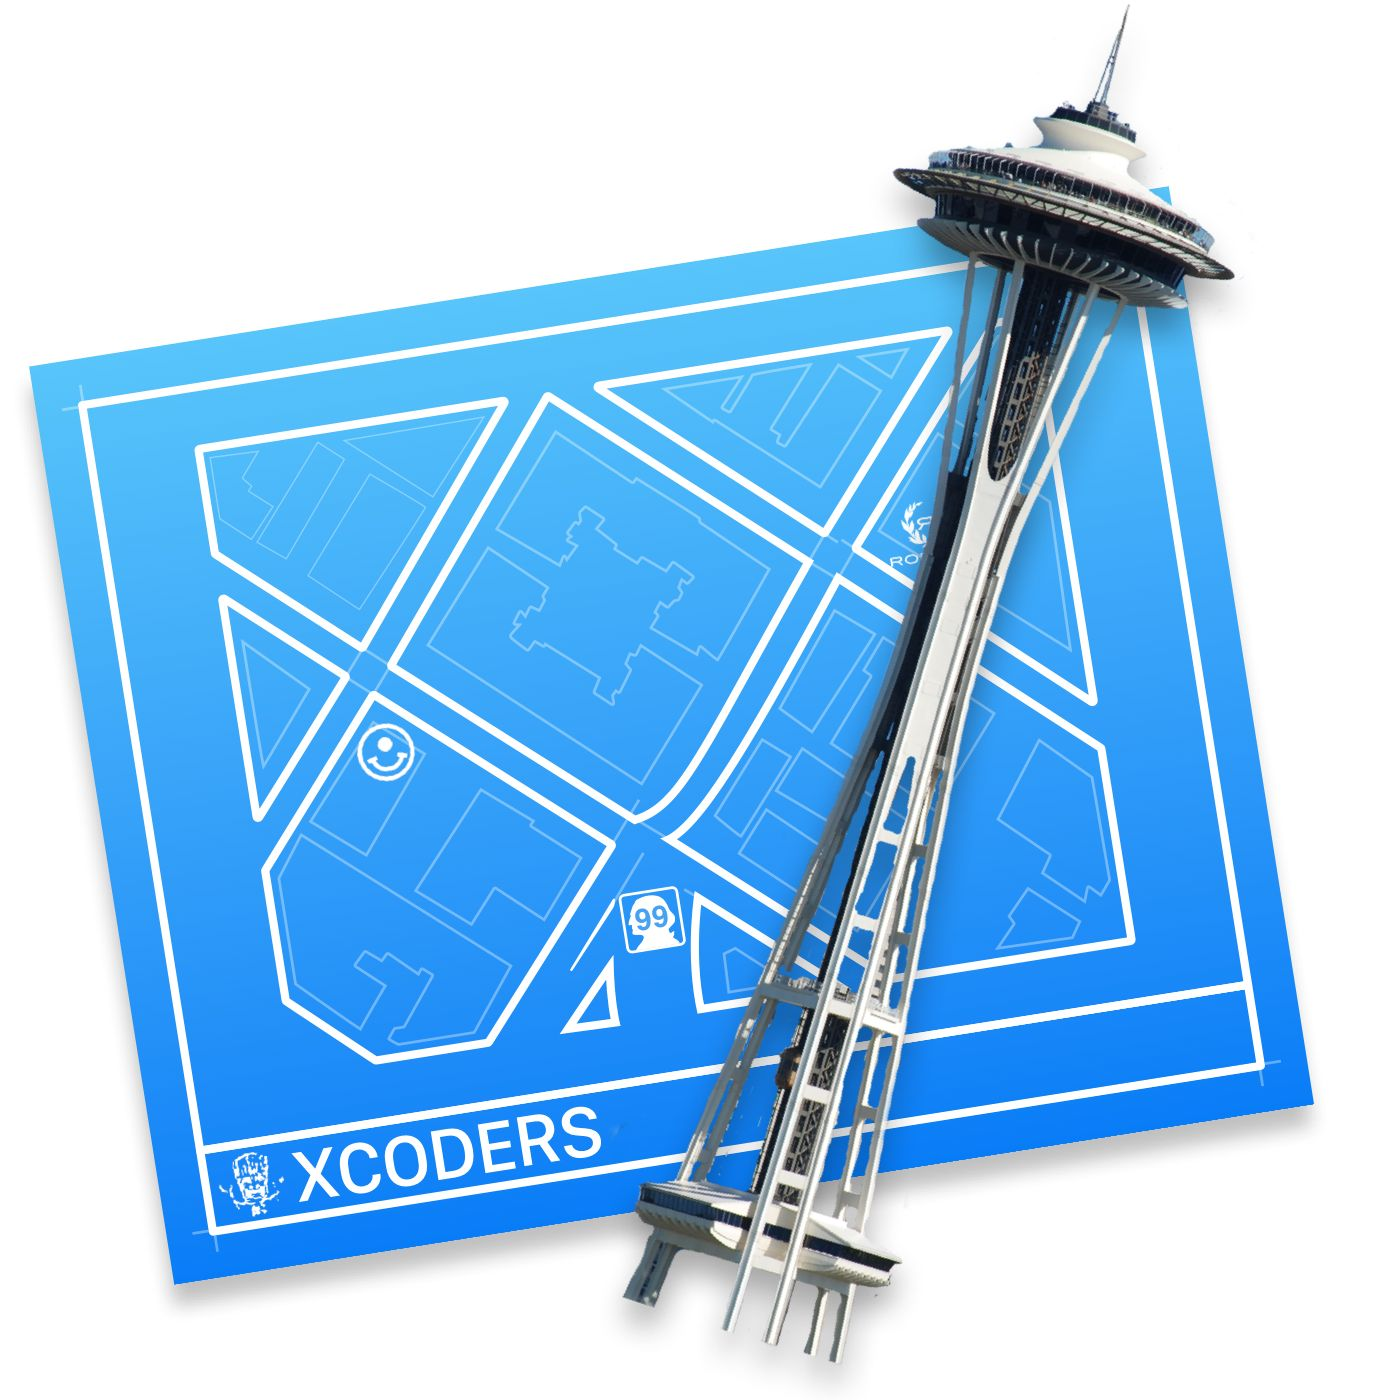 Seattle Xcoders